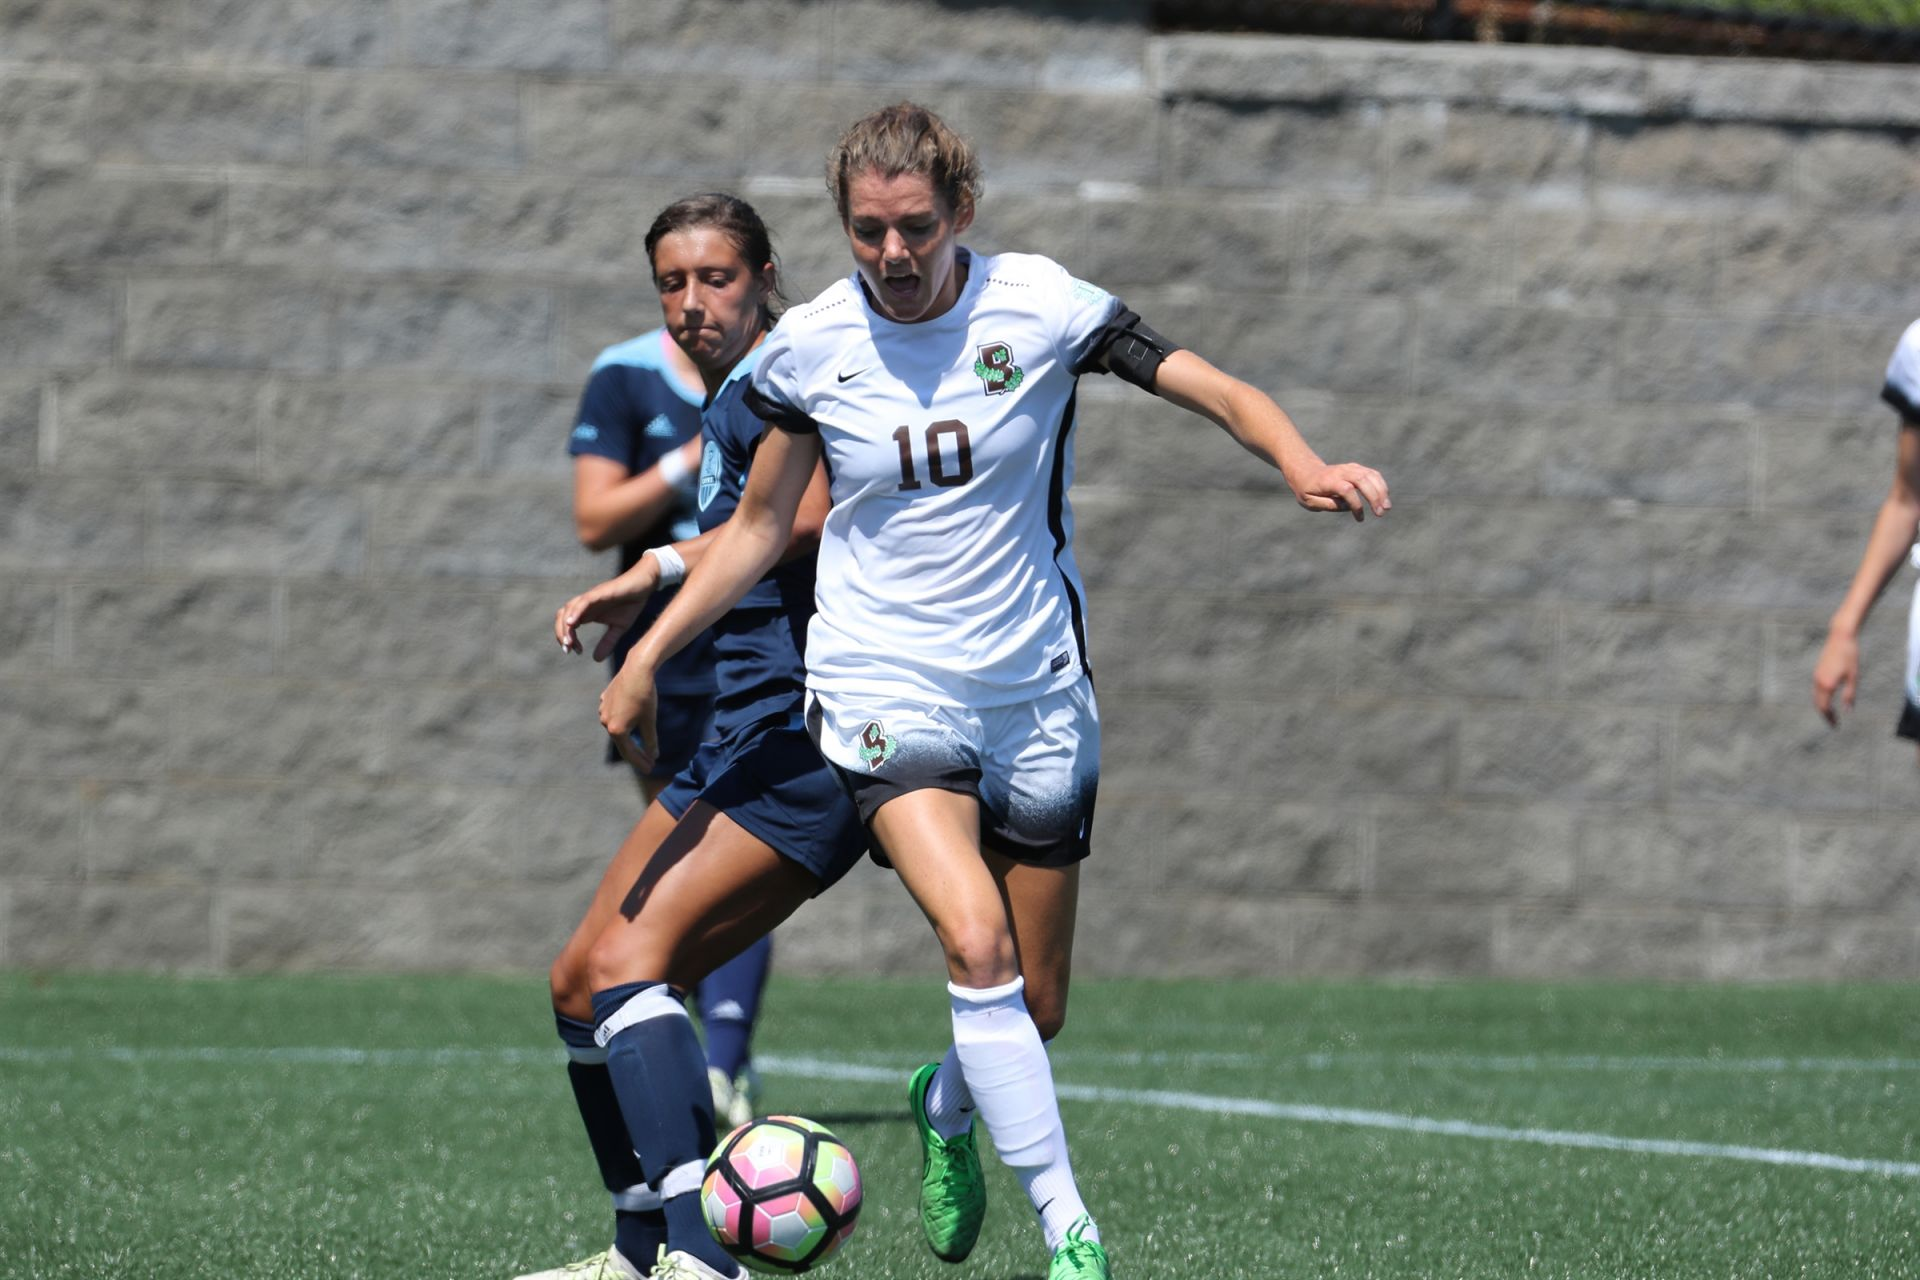 Maclaine Lehan '14 - Brown University